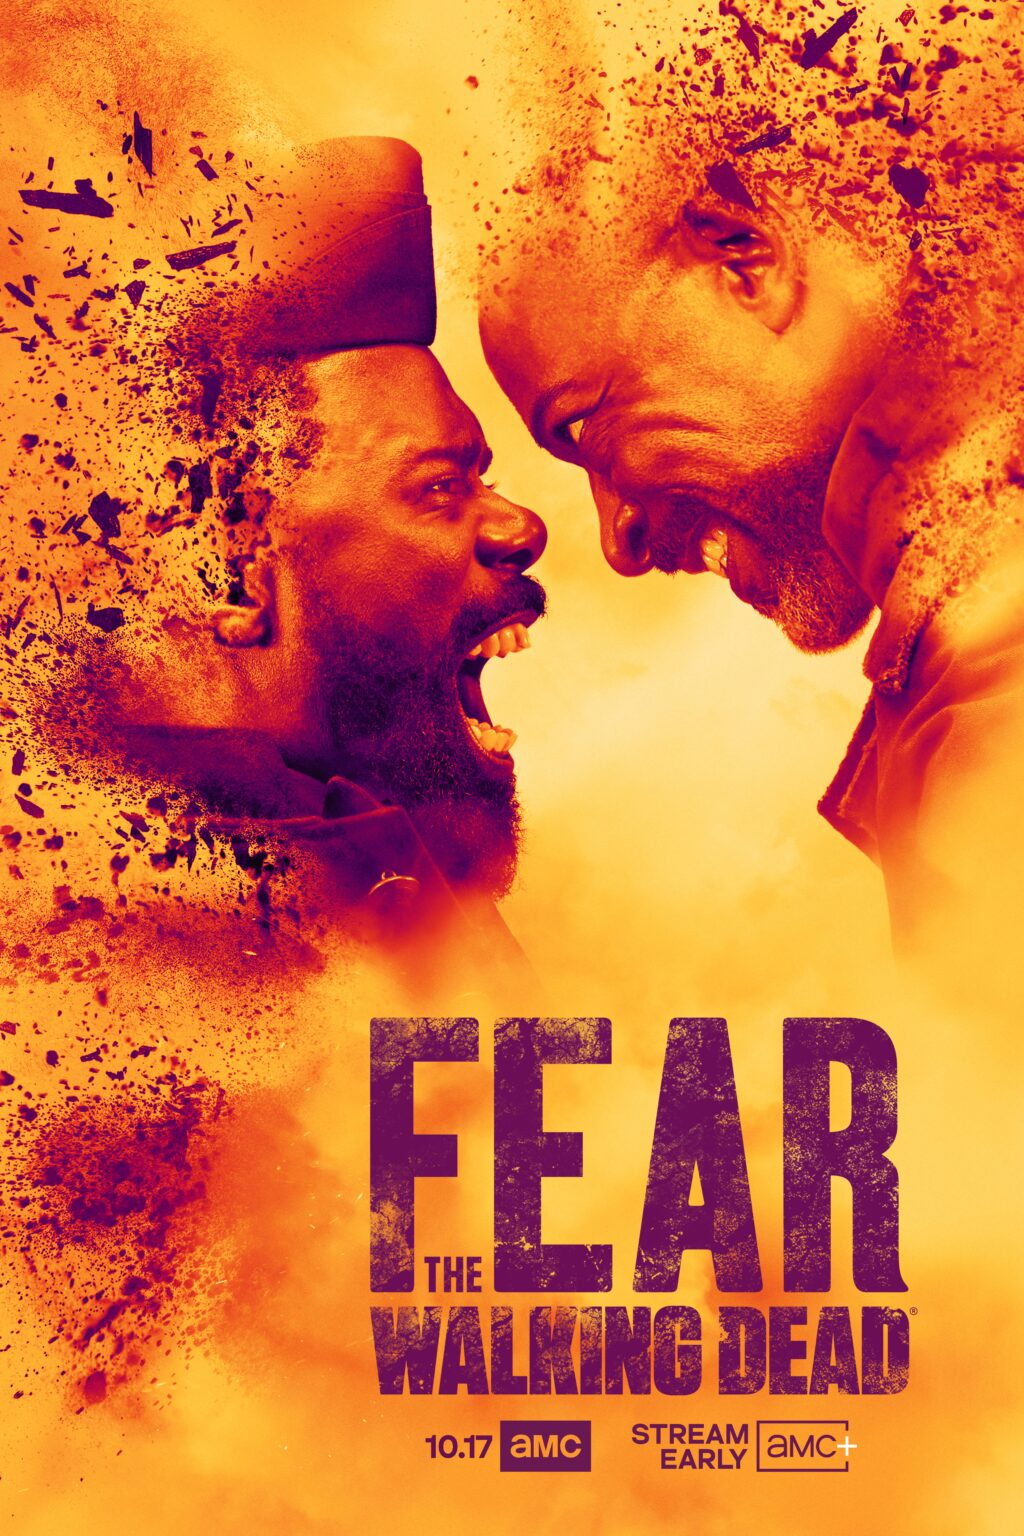 FWD S7 1024x1536 - 'Fear the Walking Dead': New Trailer and Poster Revealed For Upcoming Season 7